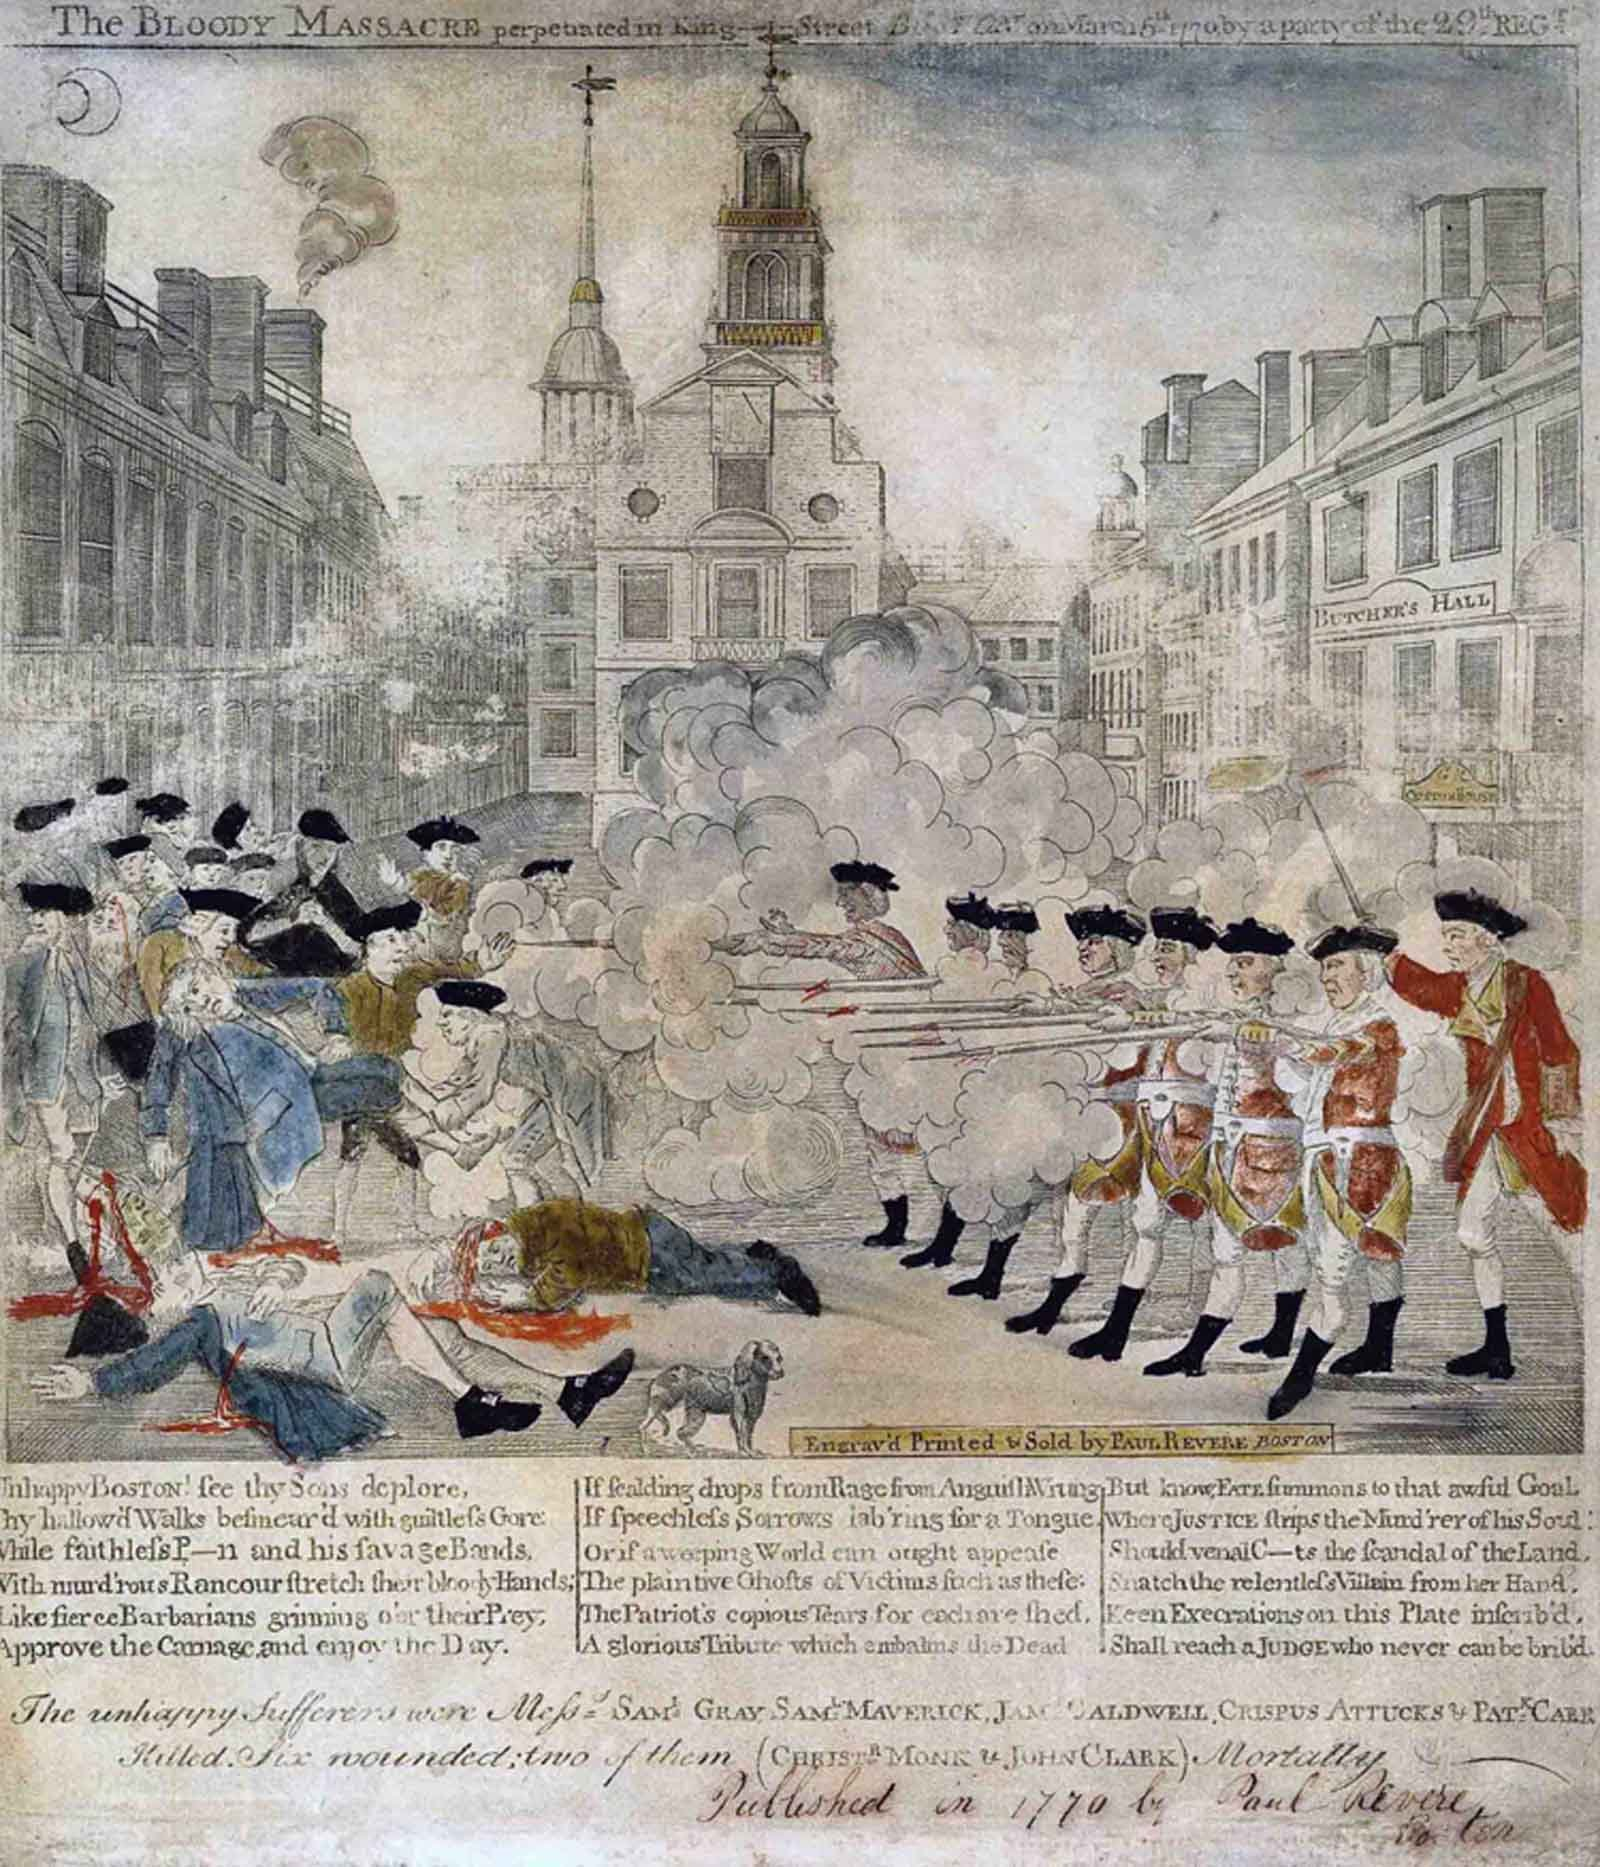 An engraving by Paul Revere depicts the Boston Massacre. (Source: Wikipedia)